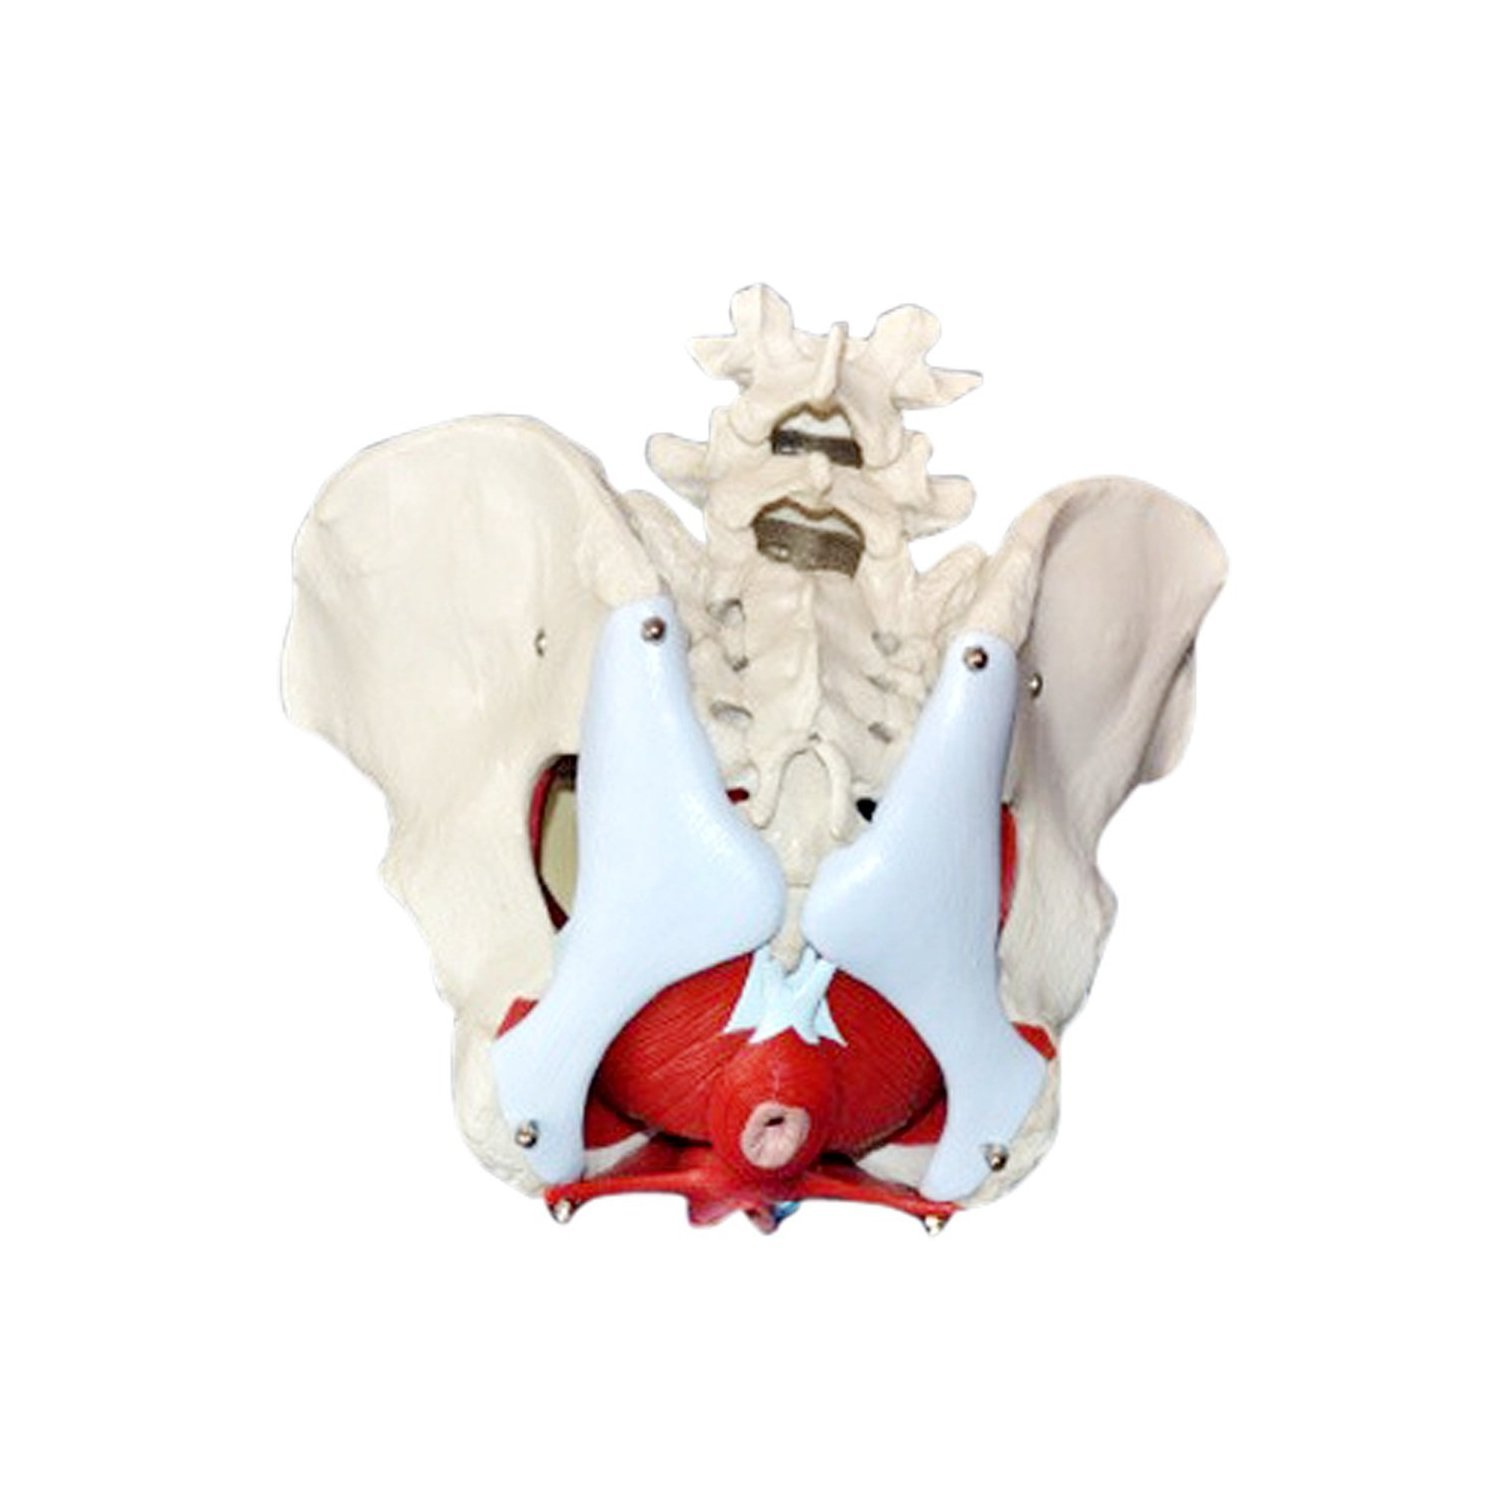 Medical Anatomical Female Pelvis Model with Removable Organs, 6-part ...